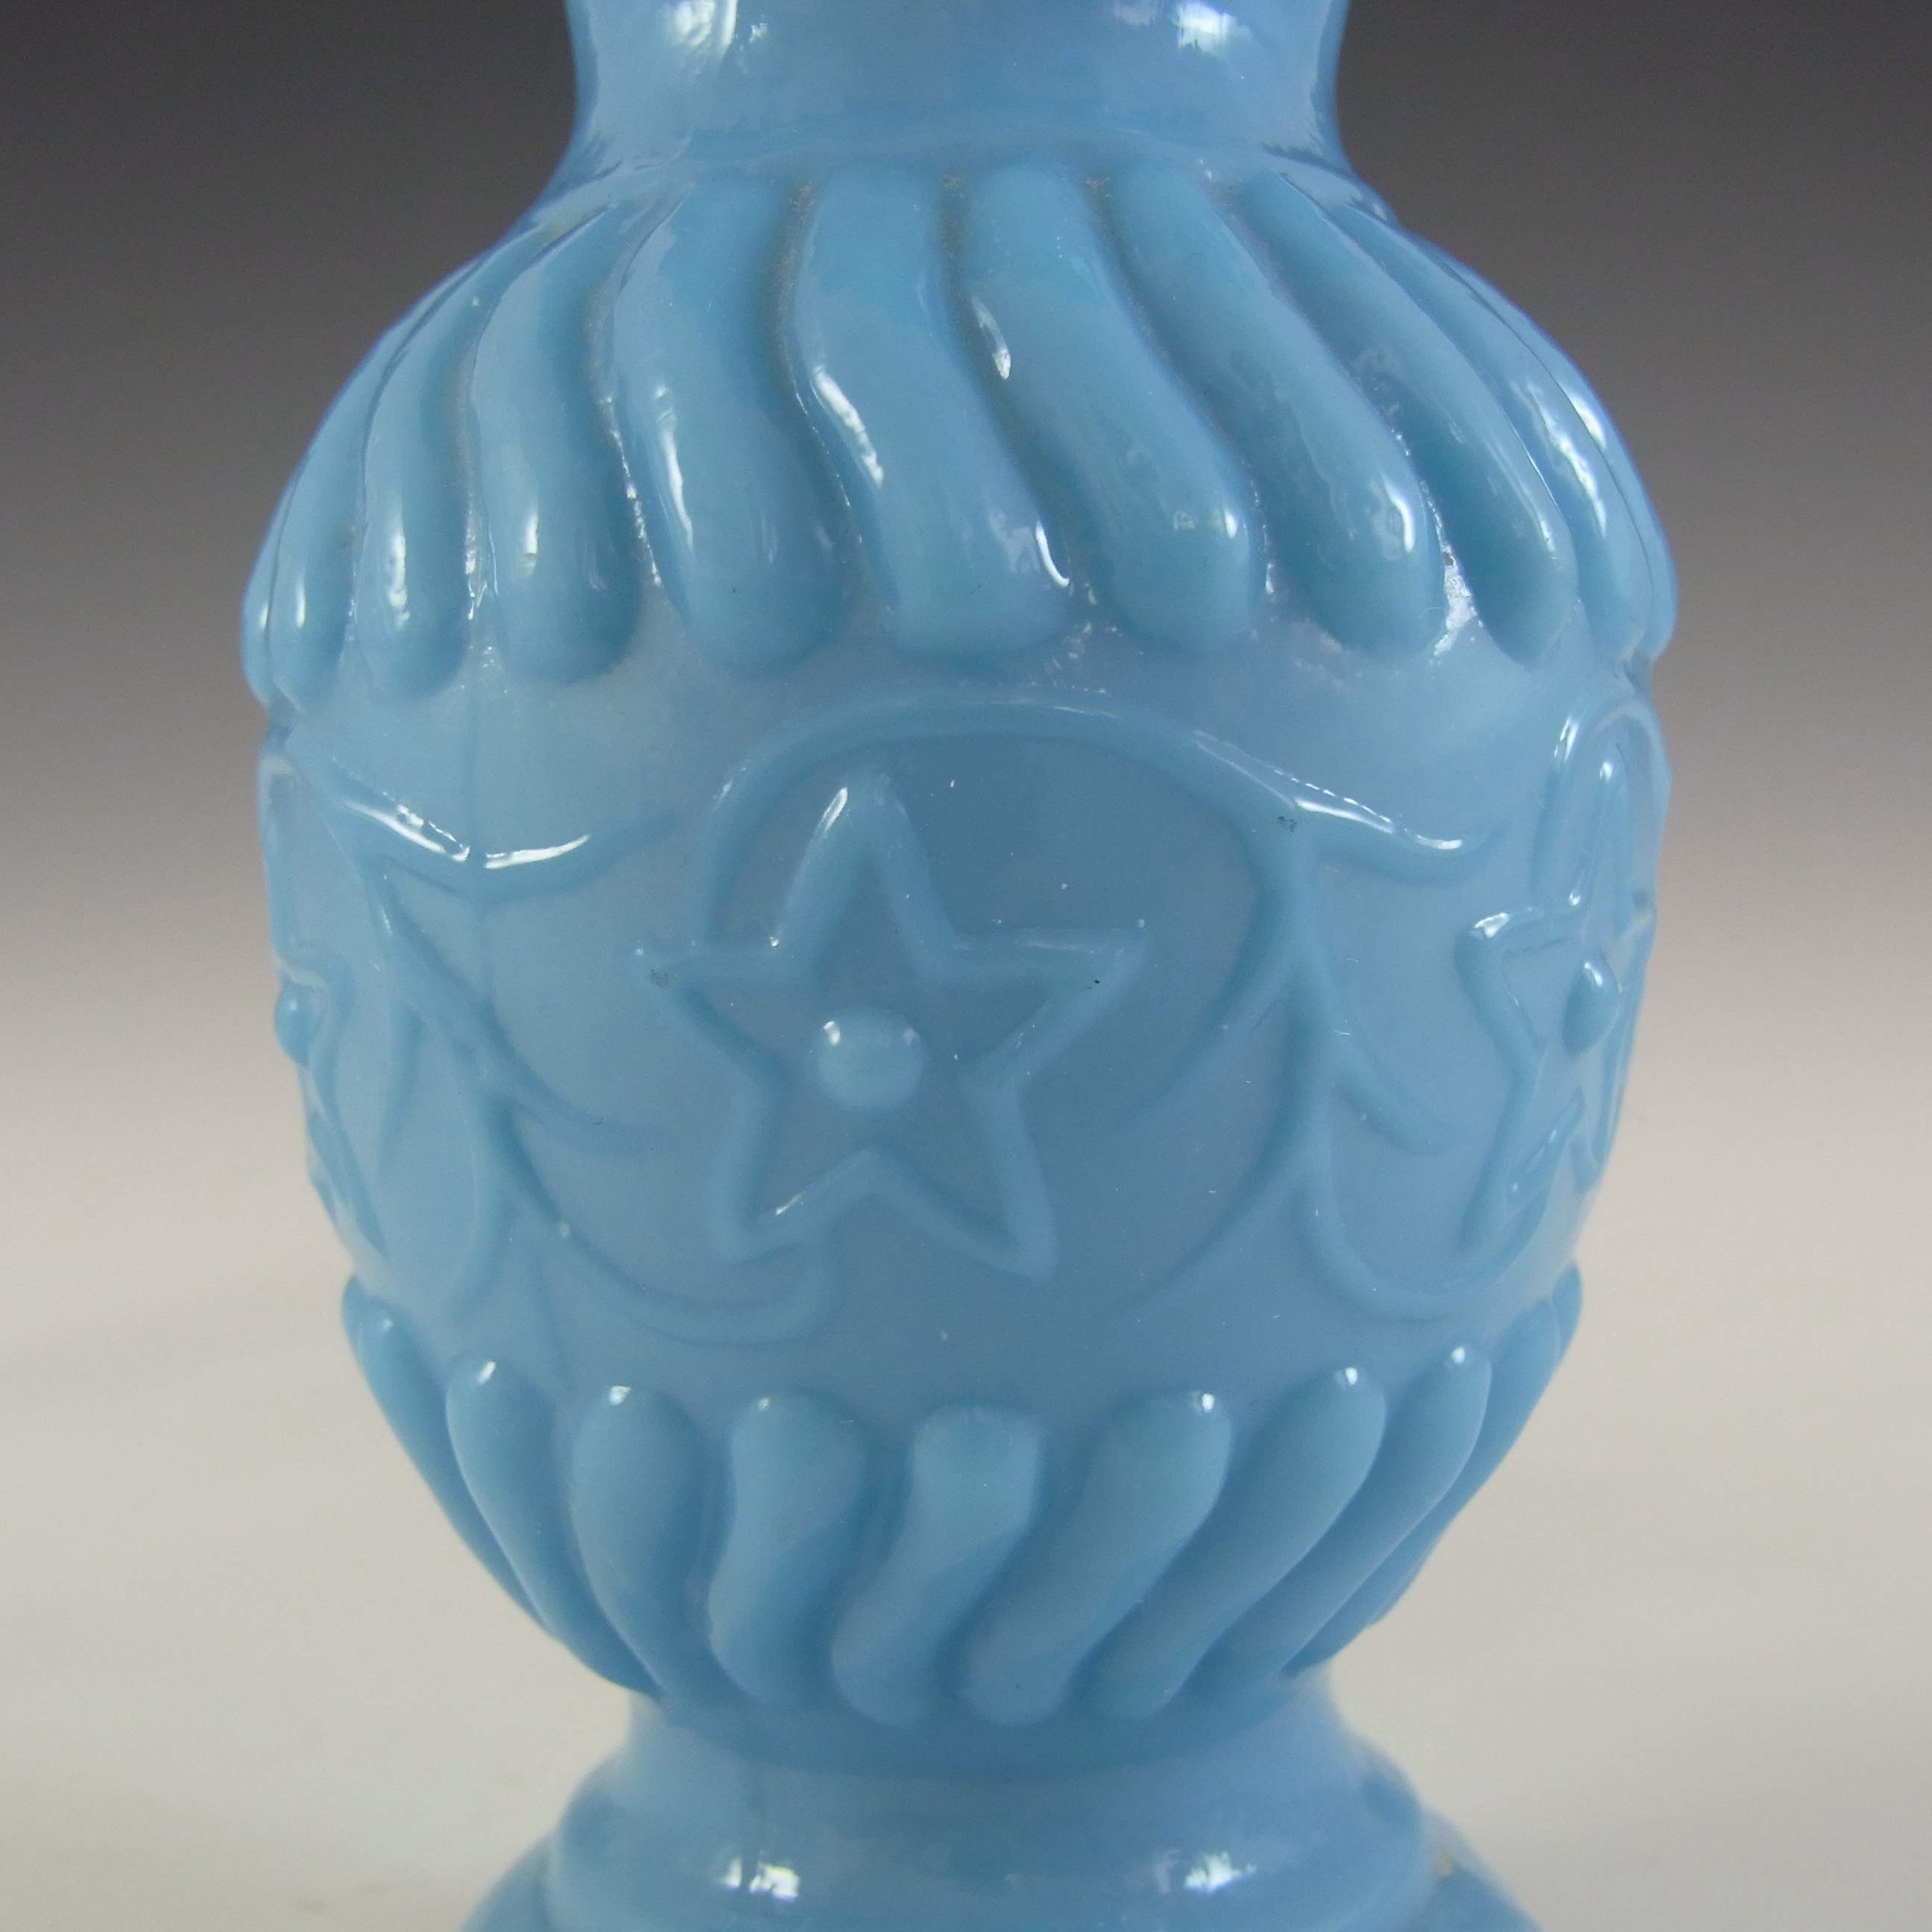 Portieux / Vallérysthal Victorian Blue Milk Glass 'Floral' Vase - Click Image to Close